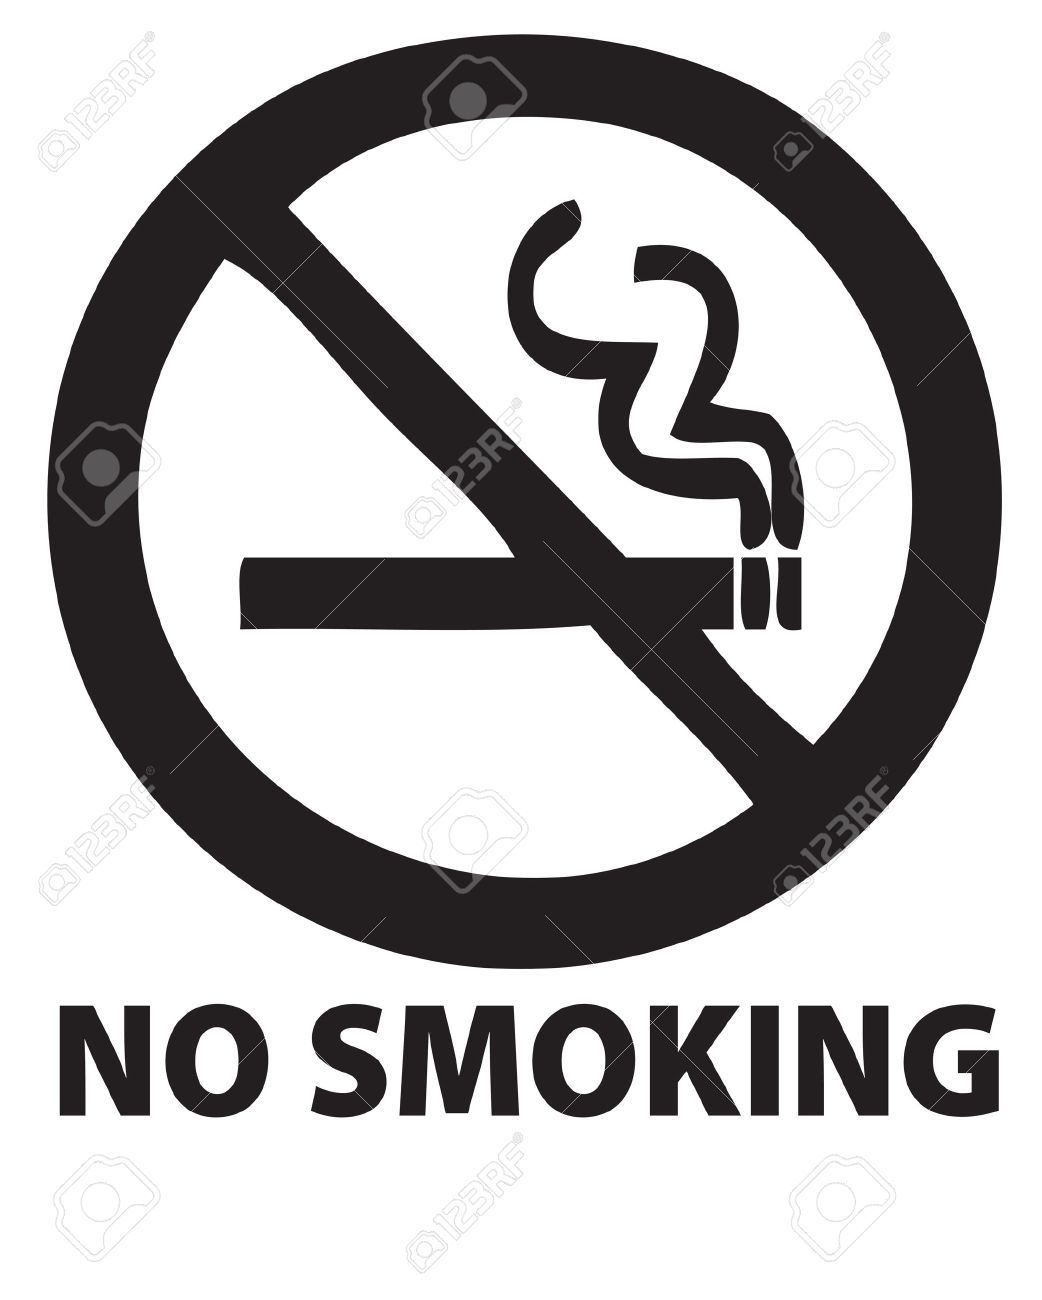 No smoking symbol stock photo picture and royalty free image image no smoking symbol stock photo 2532212 buycottarizona Images